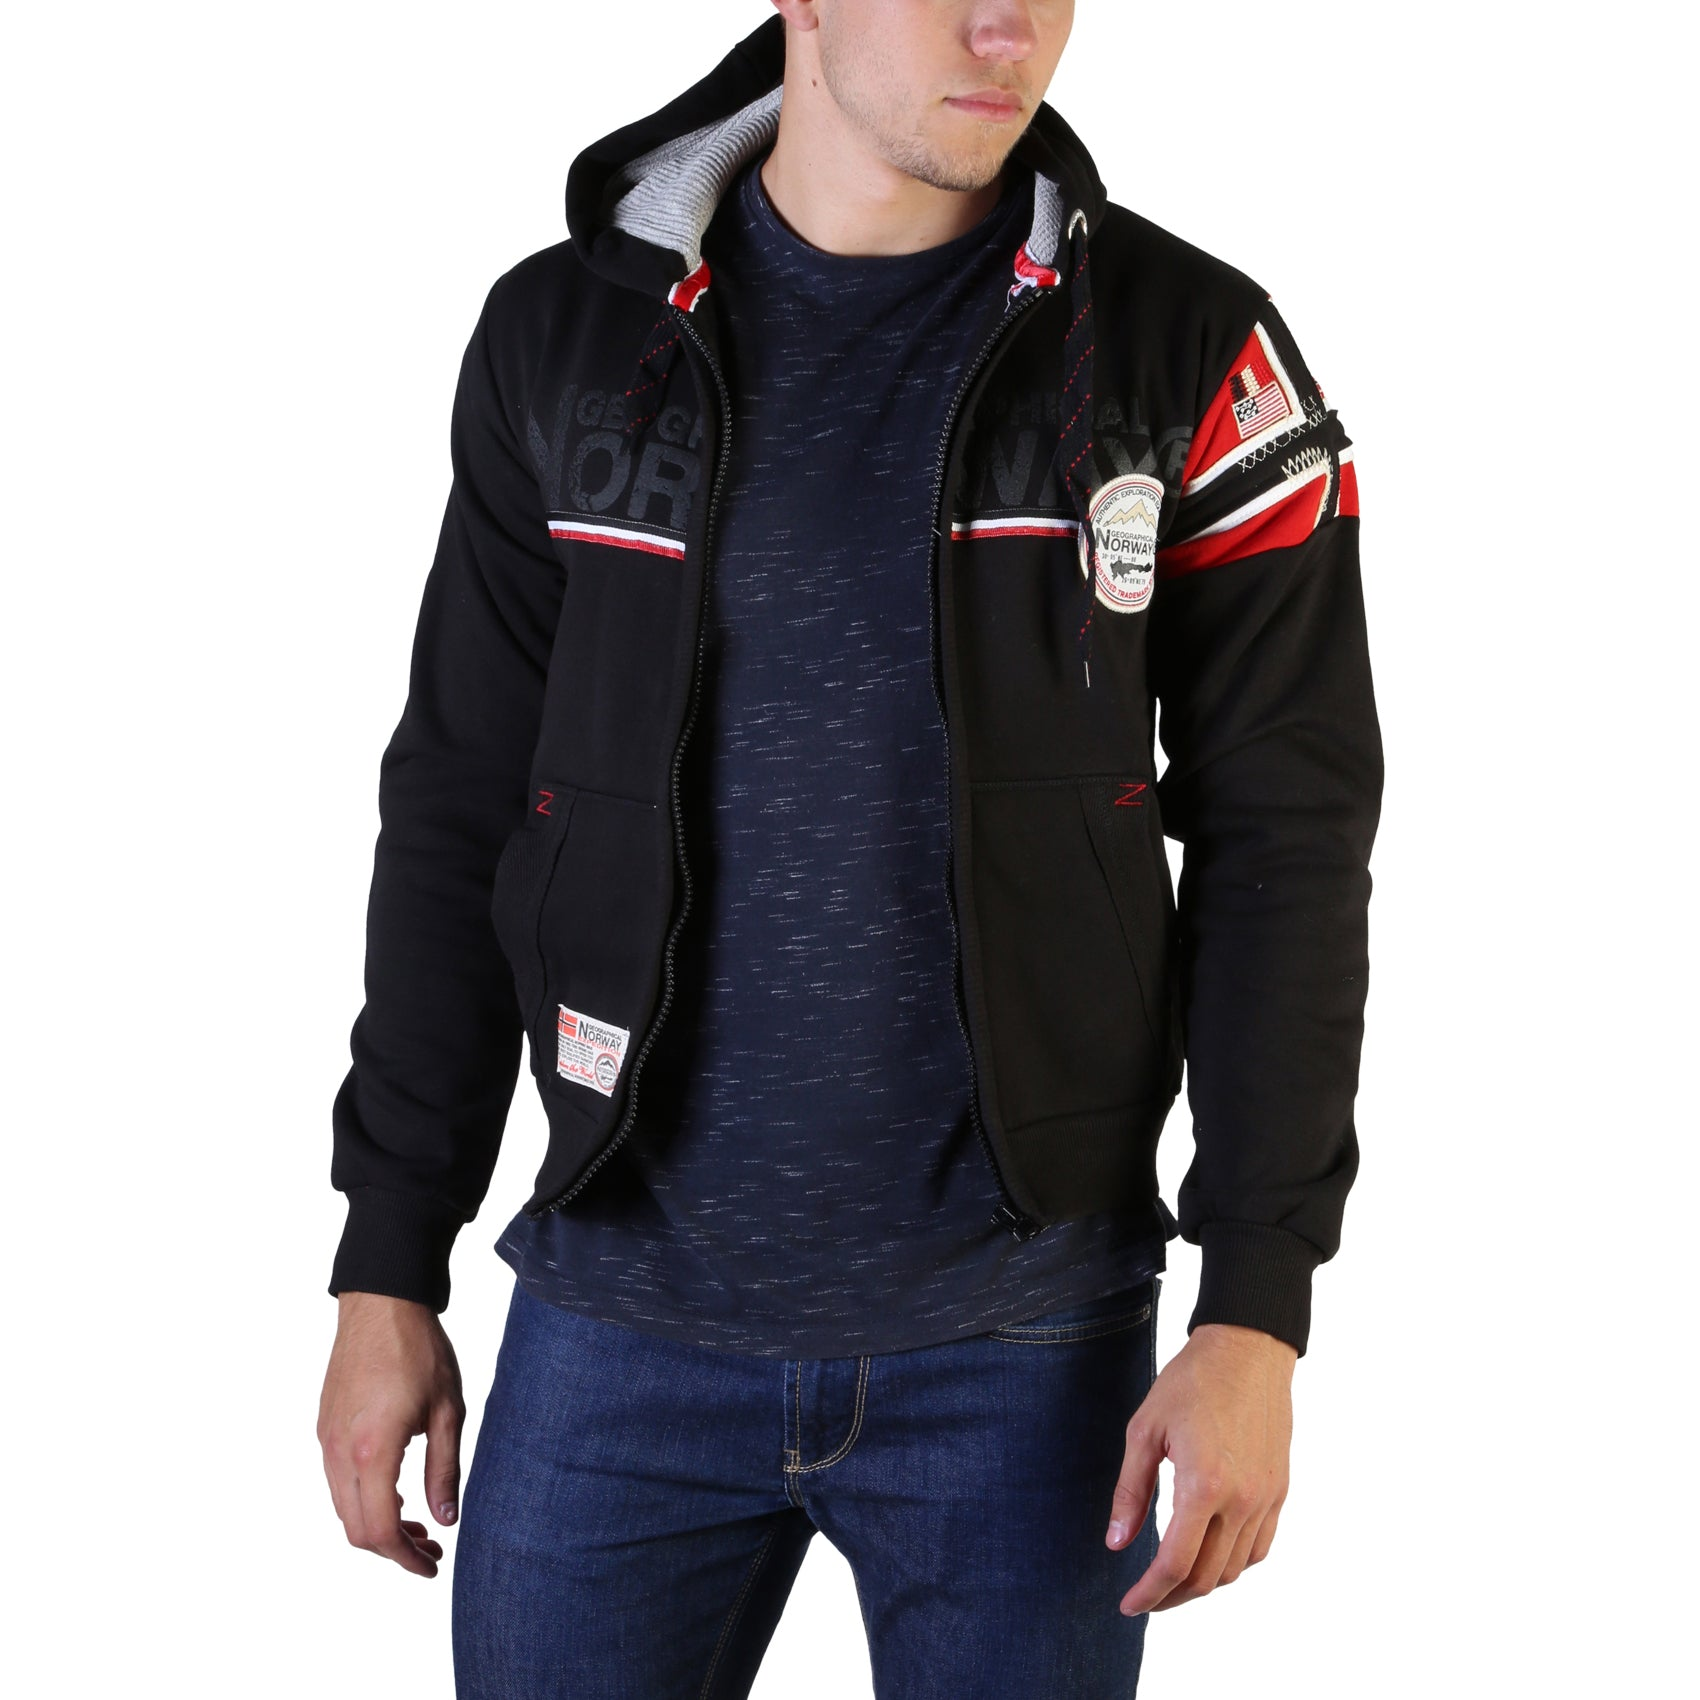 Geographical Norway - Faponie100_man - MGJ-24.net